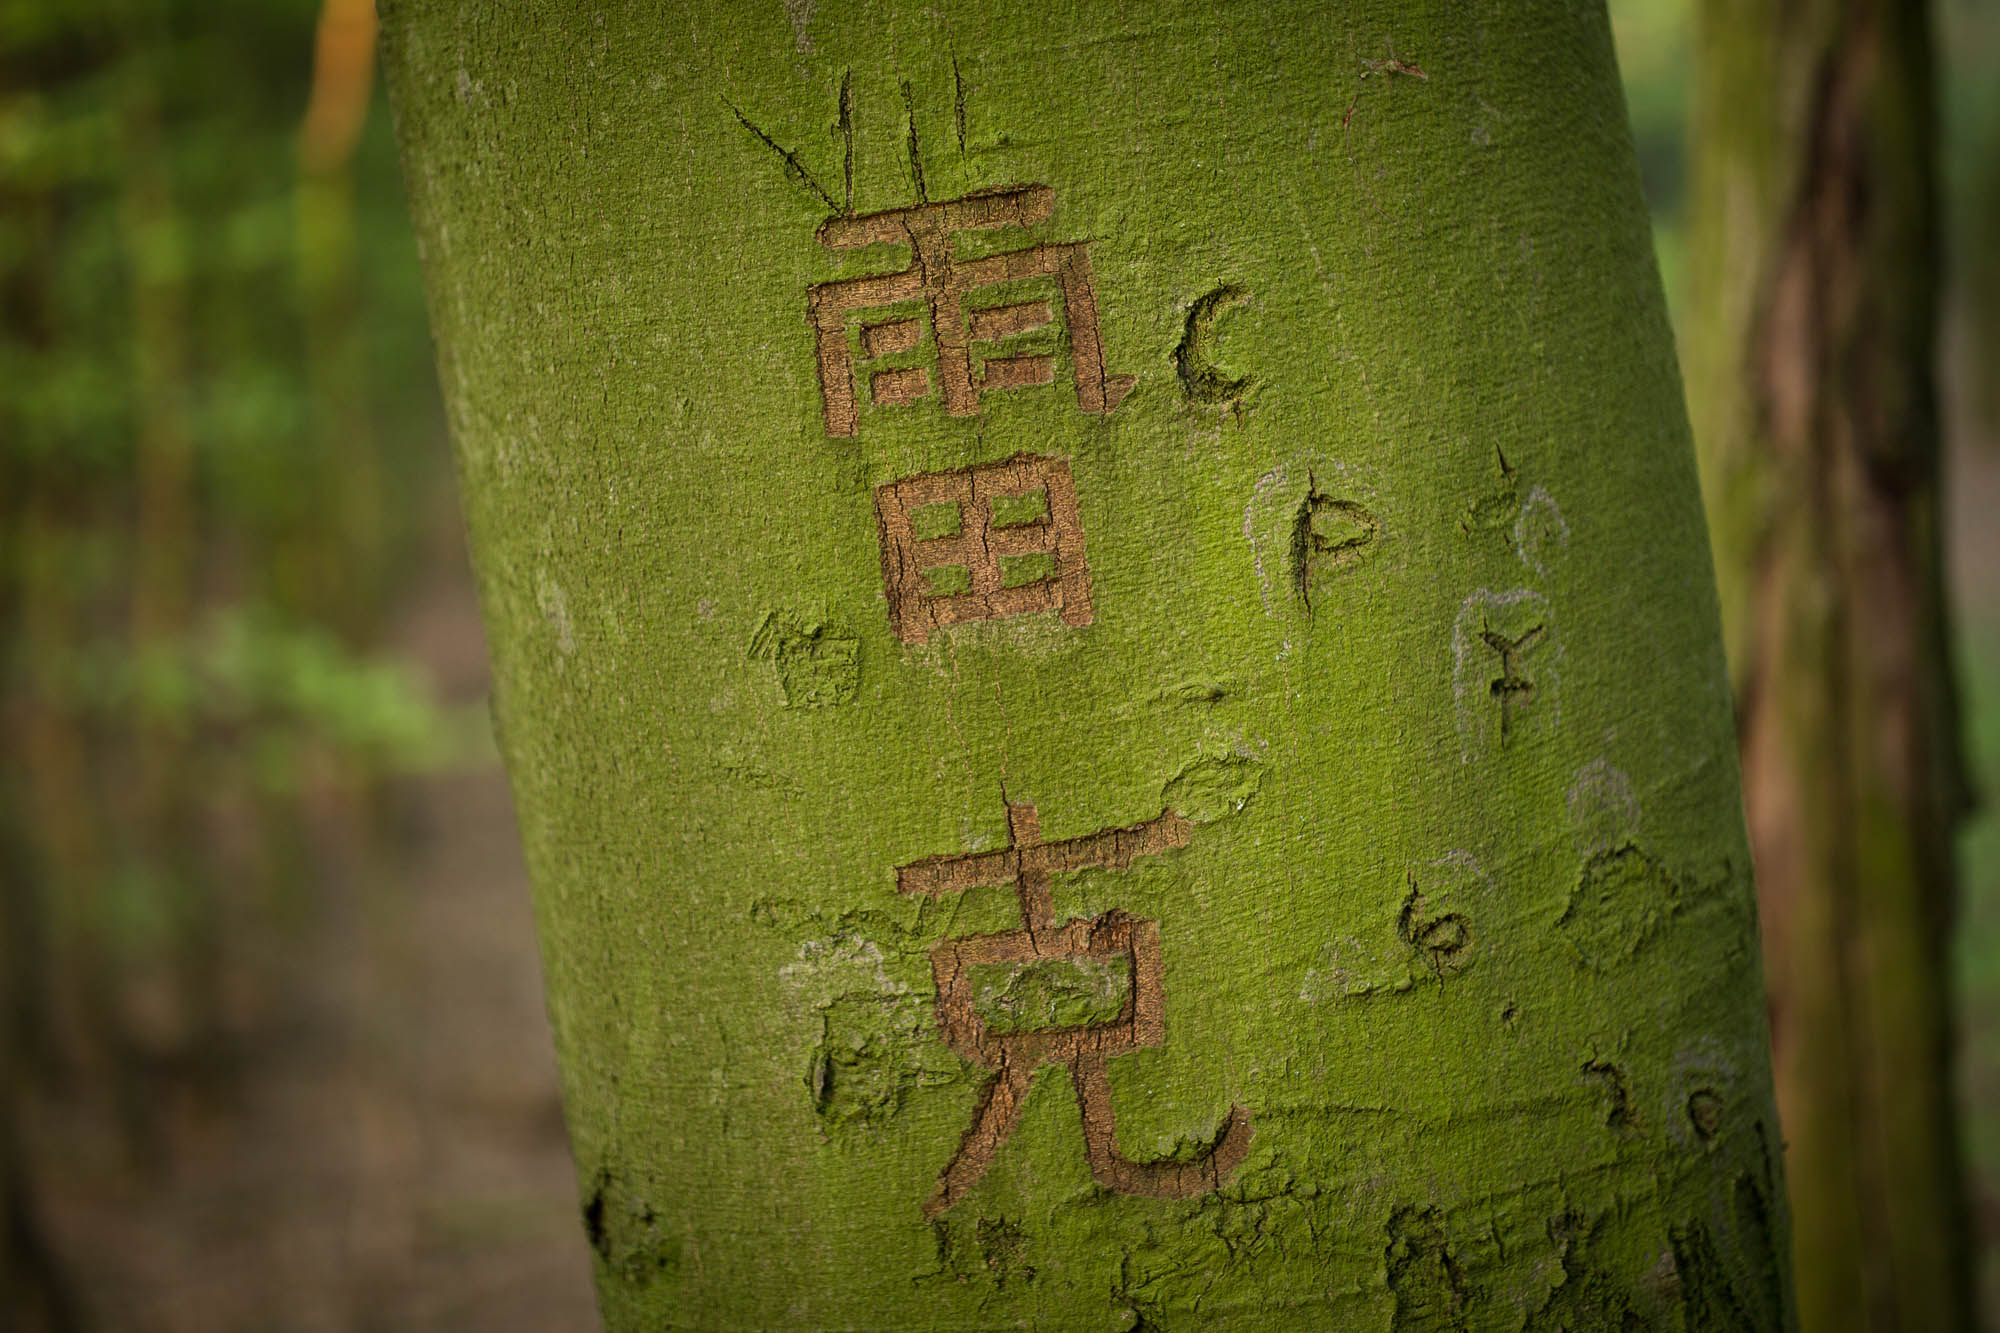 """Leike"" carved into a tree"